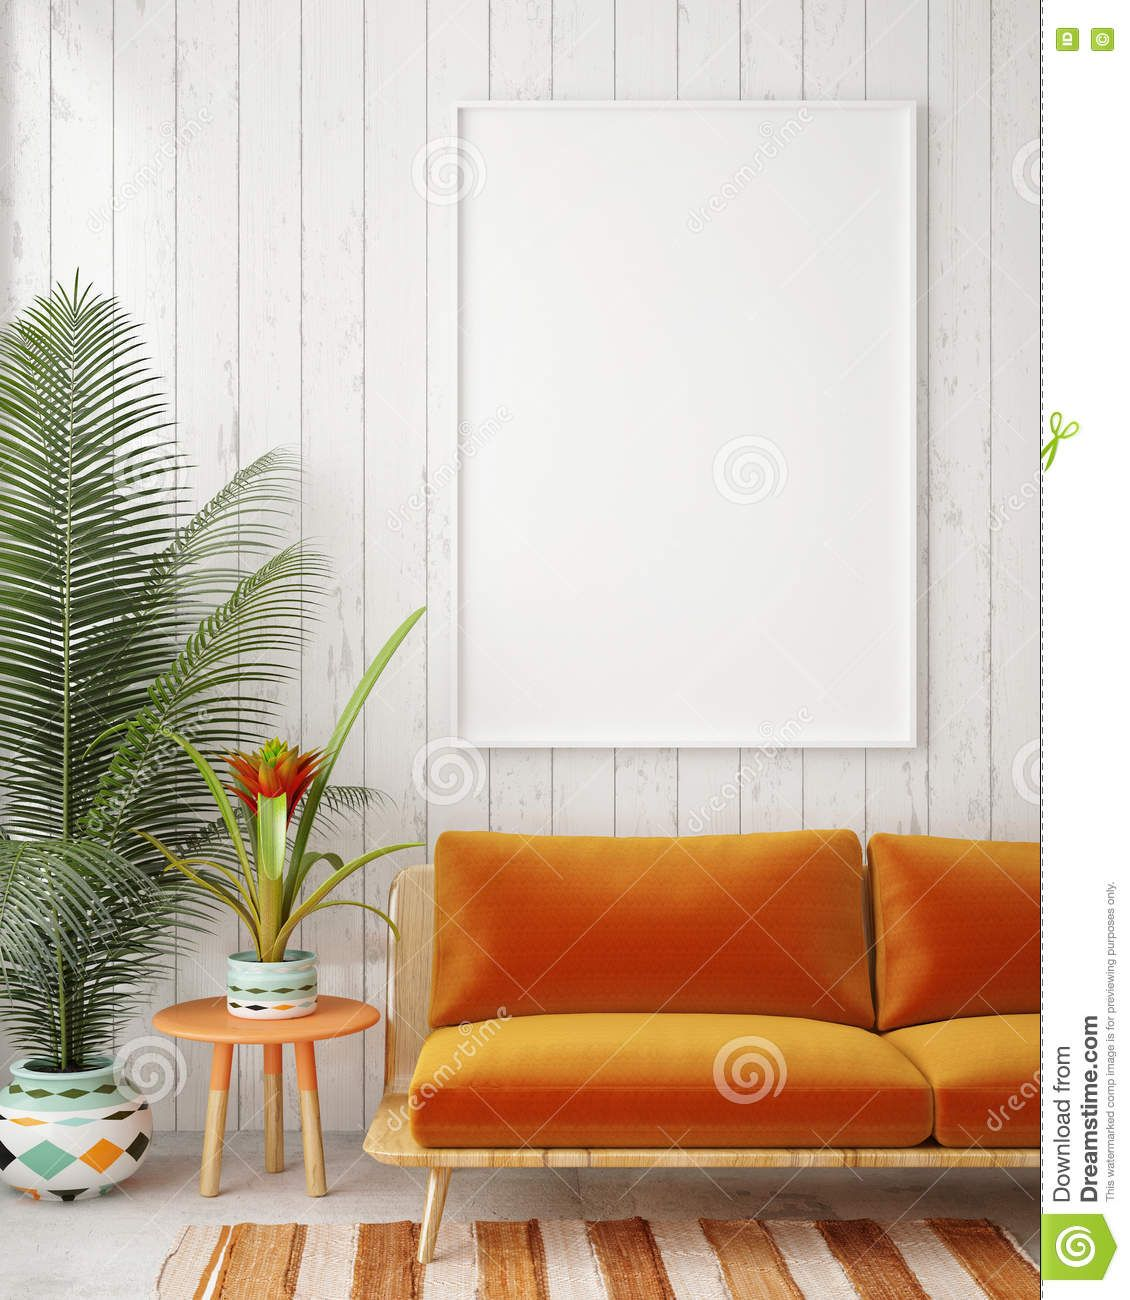 Mock Up Blank Poster On The Wall Of Vintage Living Room Download